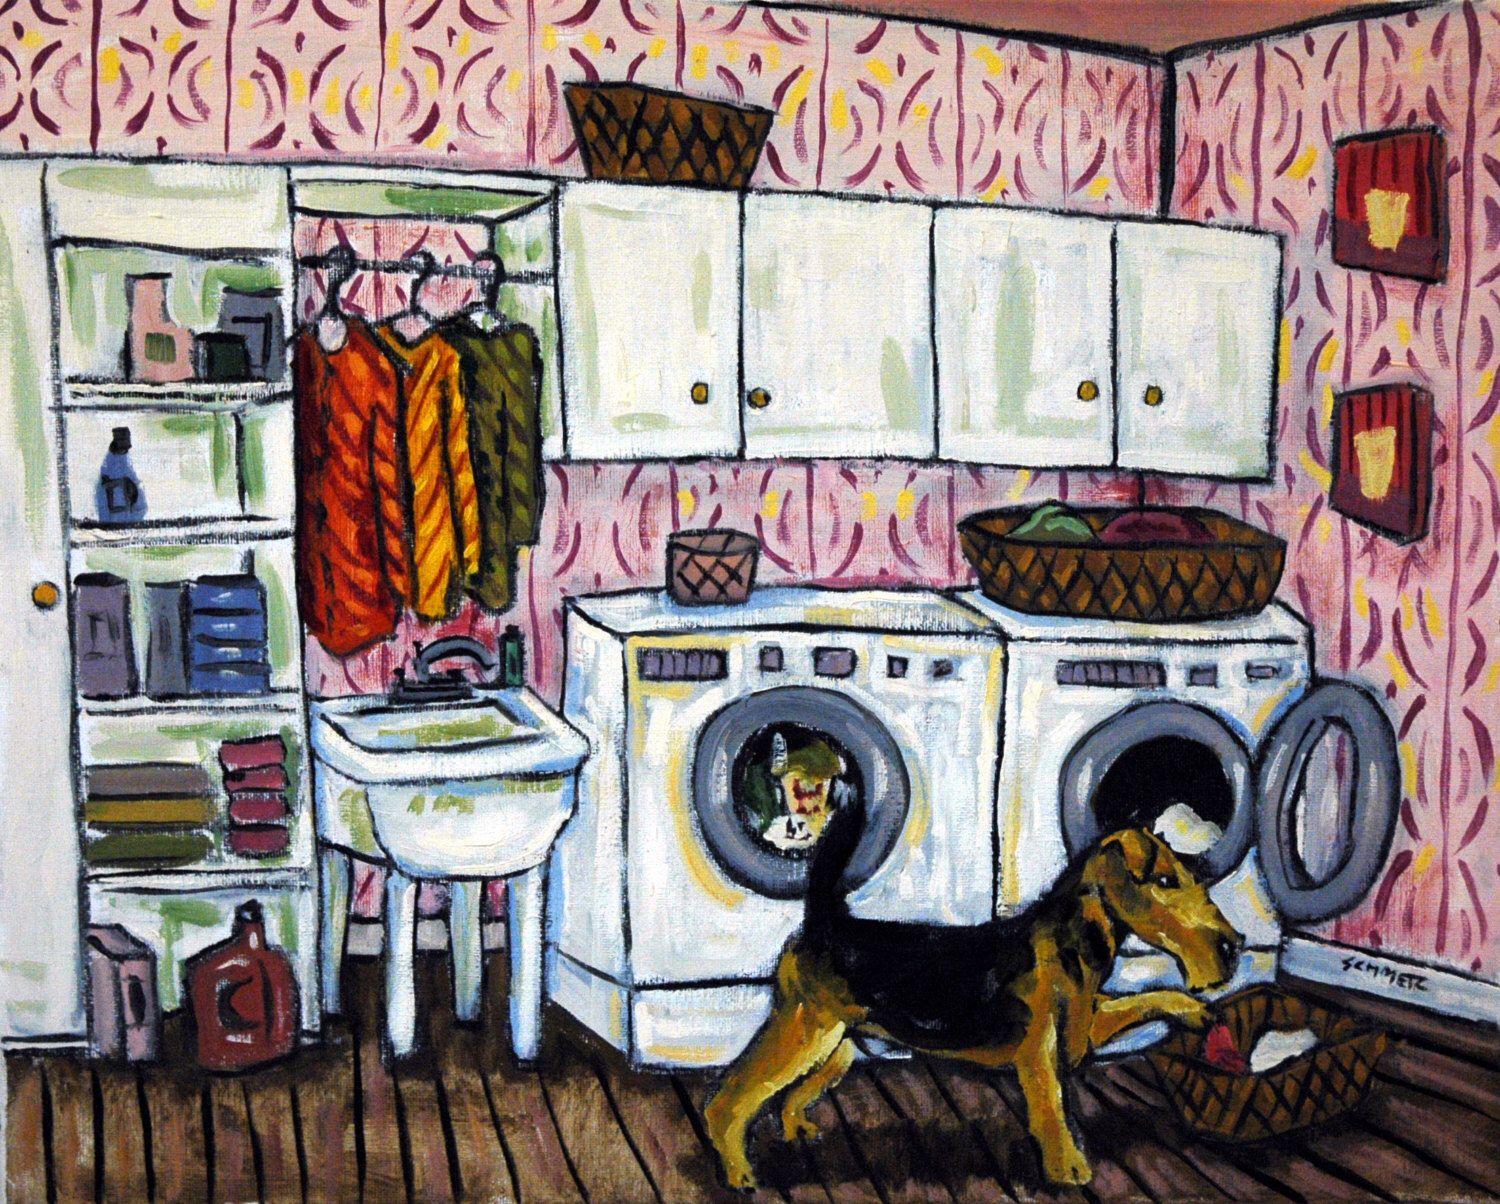 Airedale Terrier dog art PRINT poster gift laundry room 8x10 JSCHMETZ by SCHMETZPETZ on Etsy https://www.etsy.com/listing/99676877/airedale-terrier-dog-art-print-poster